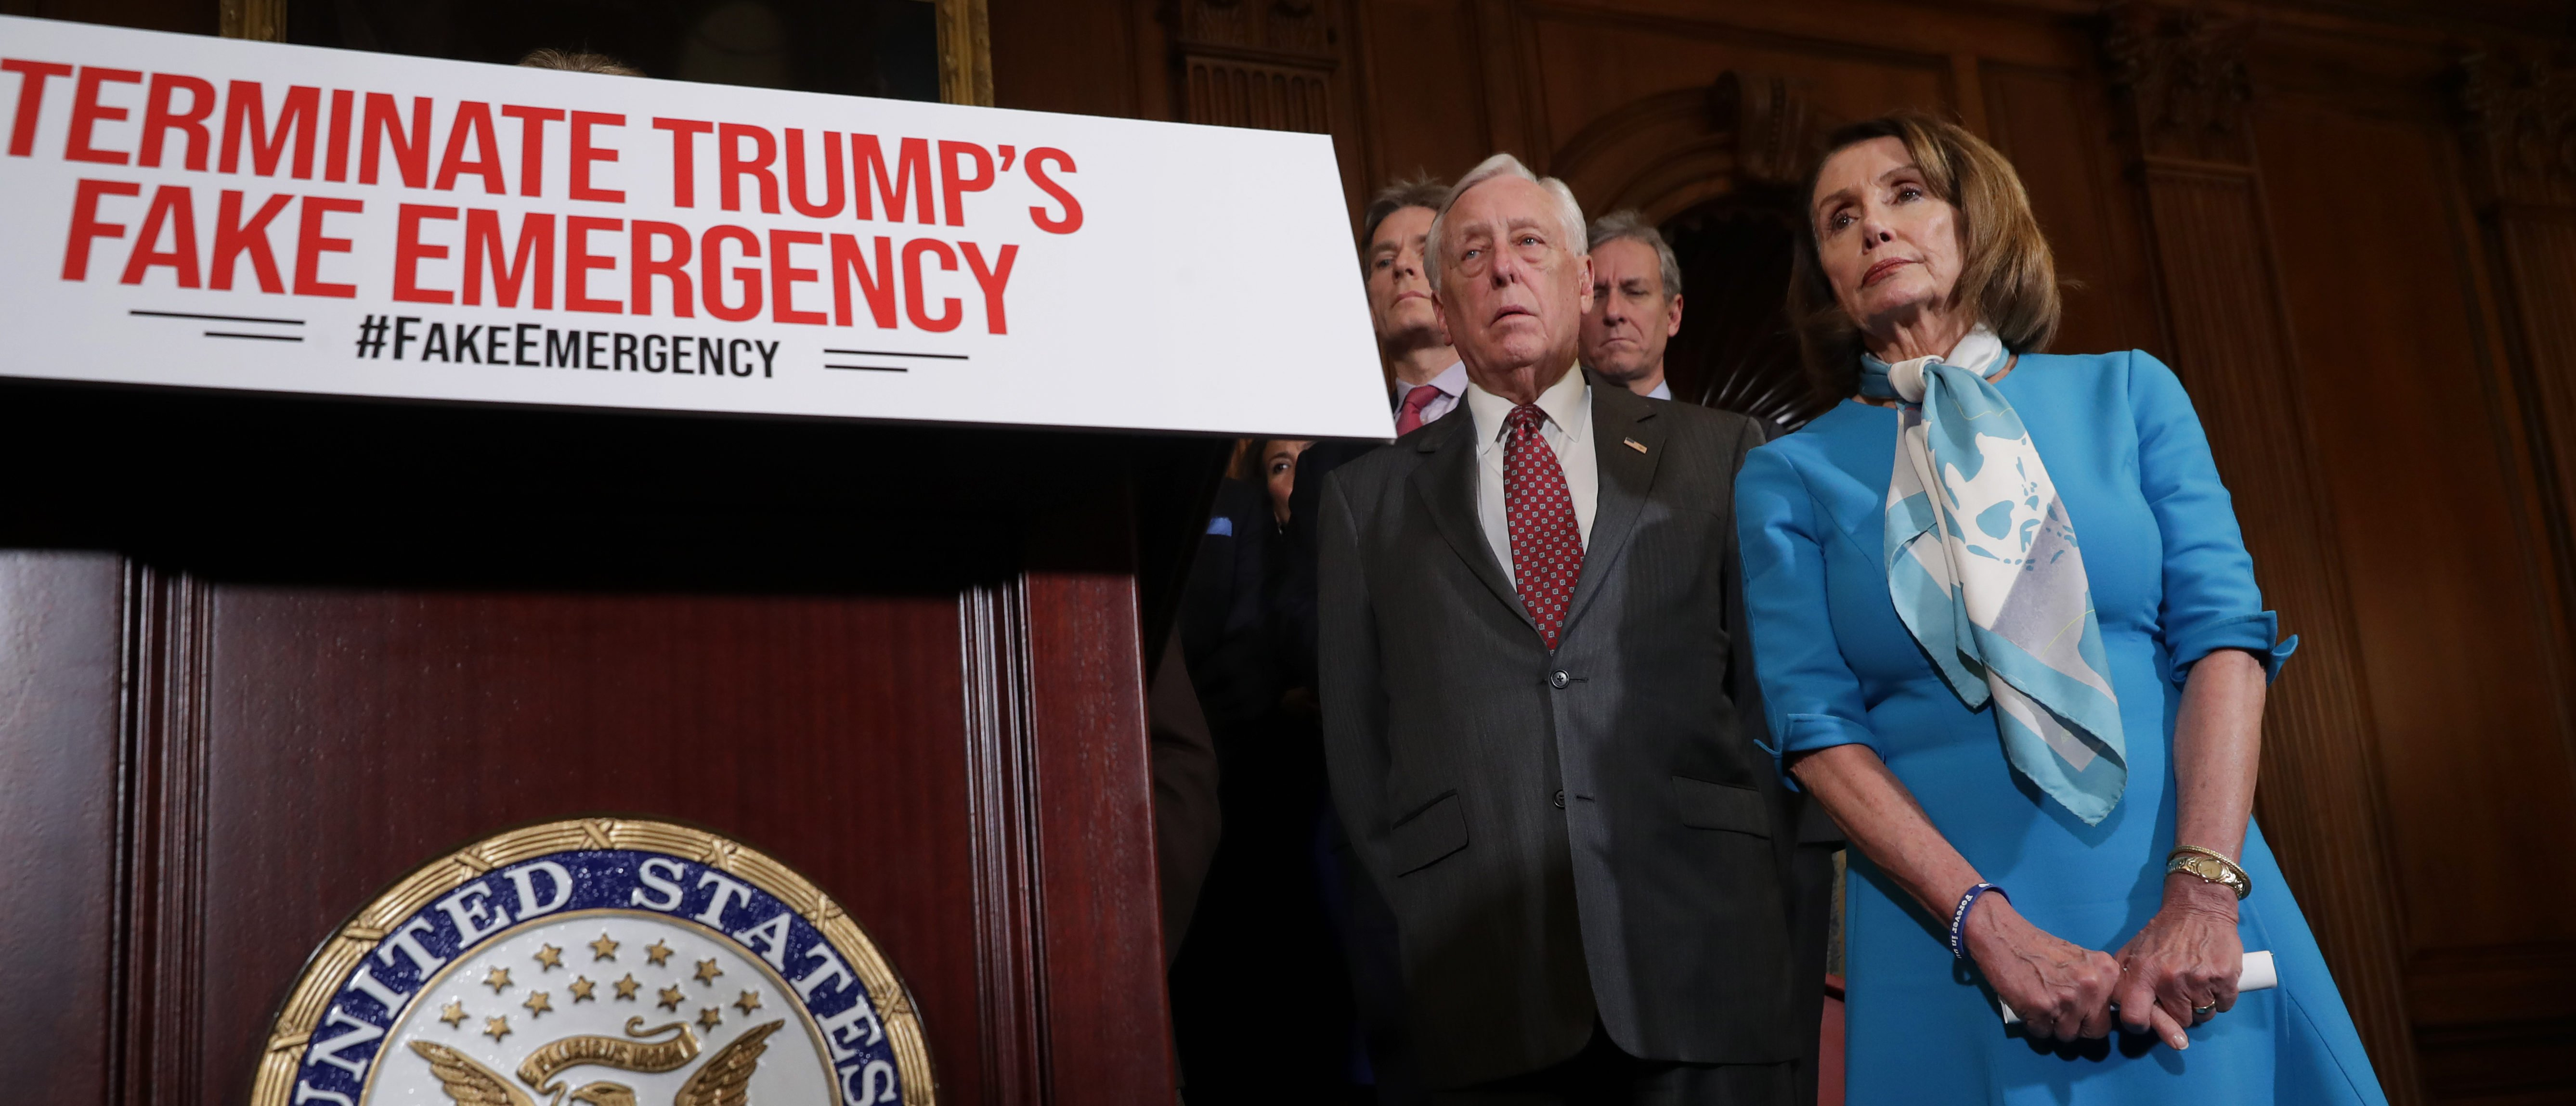 WASHINGTON, DC - FEBRUARY 25: Speaker of the House Nancy Pelosi (D-CA) (R) is joined by House Majority Leader Steny Hoyer (D-MD) and other House Democrats for a news conference on the Privileged Resolution to Terminate President Donald Trump's emergency declaration February 25, 2019 (Photo by Chip Somodevilla/Getty Images)